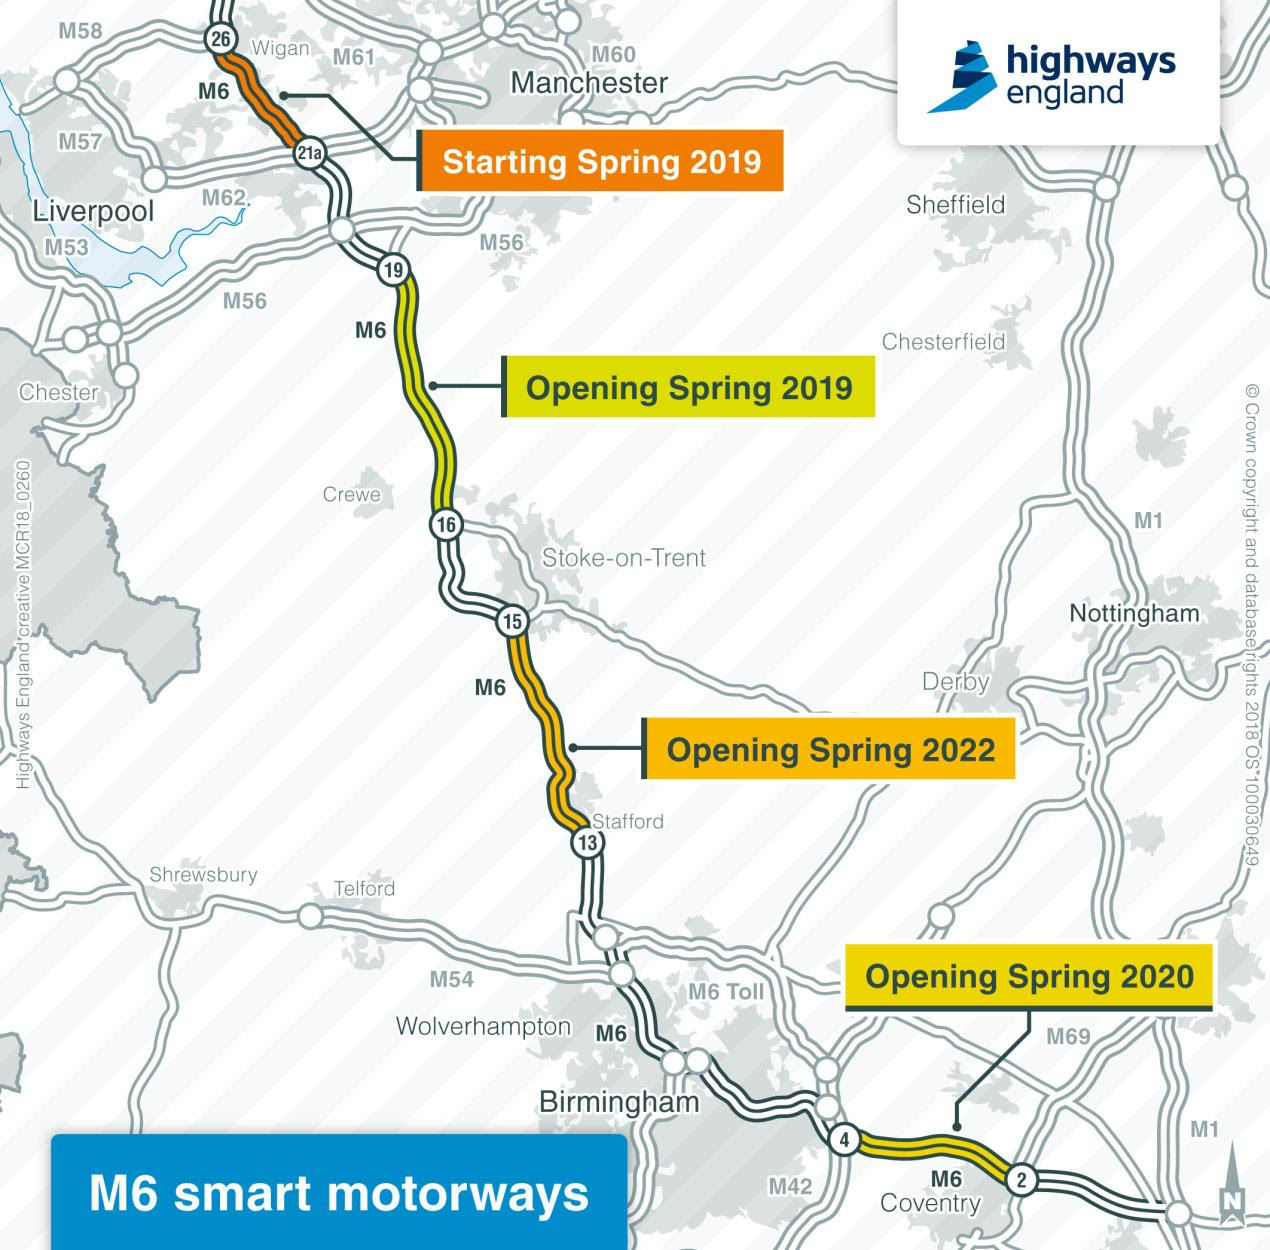 Motorway Map Of England.England S First Motorway Turns 60 With Major Technology Upgrade